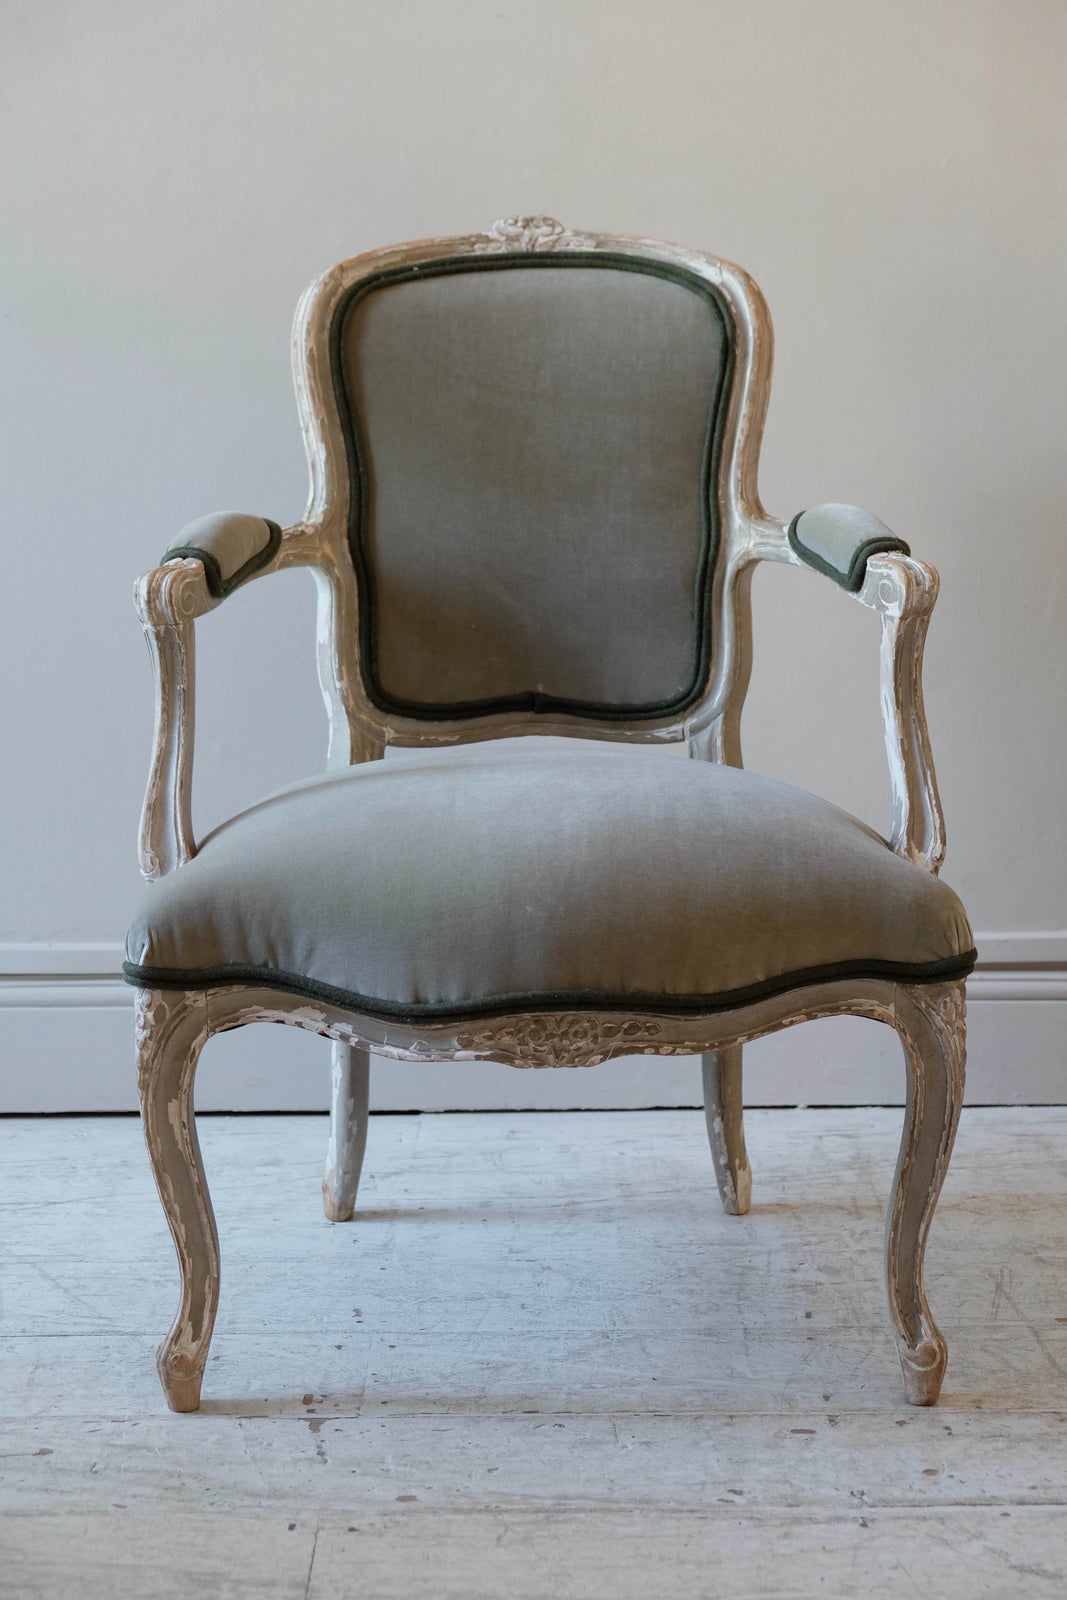 Pair of French of Late 19th C. Open Arm Chairs